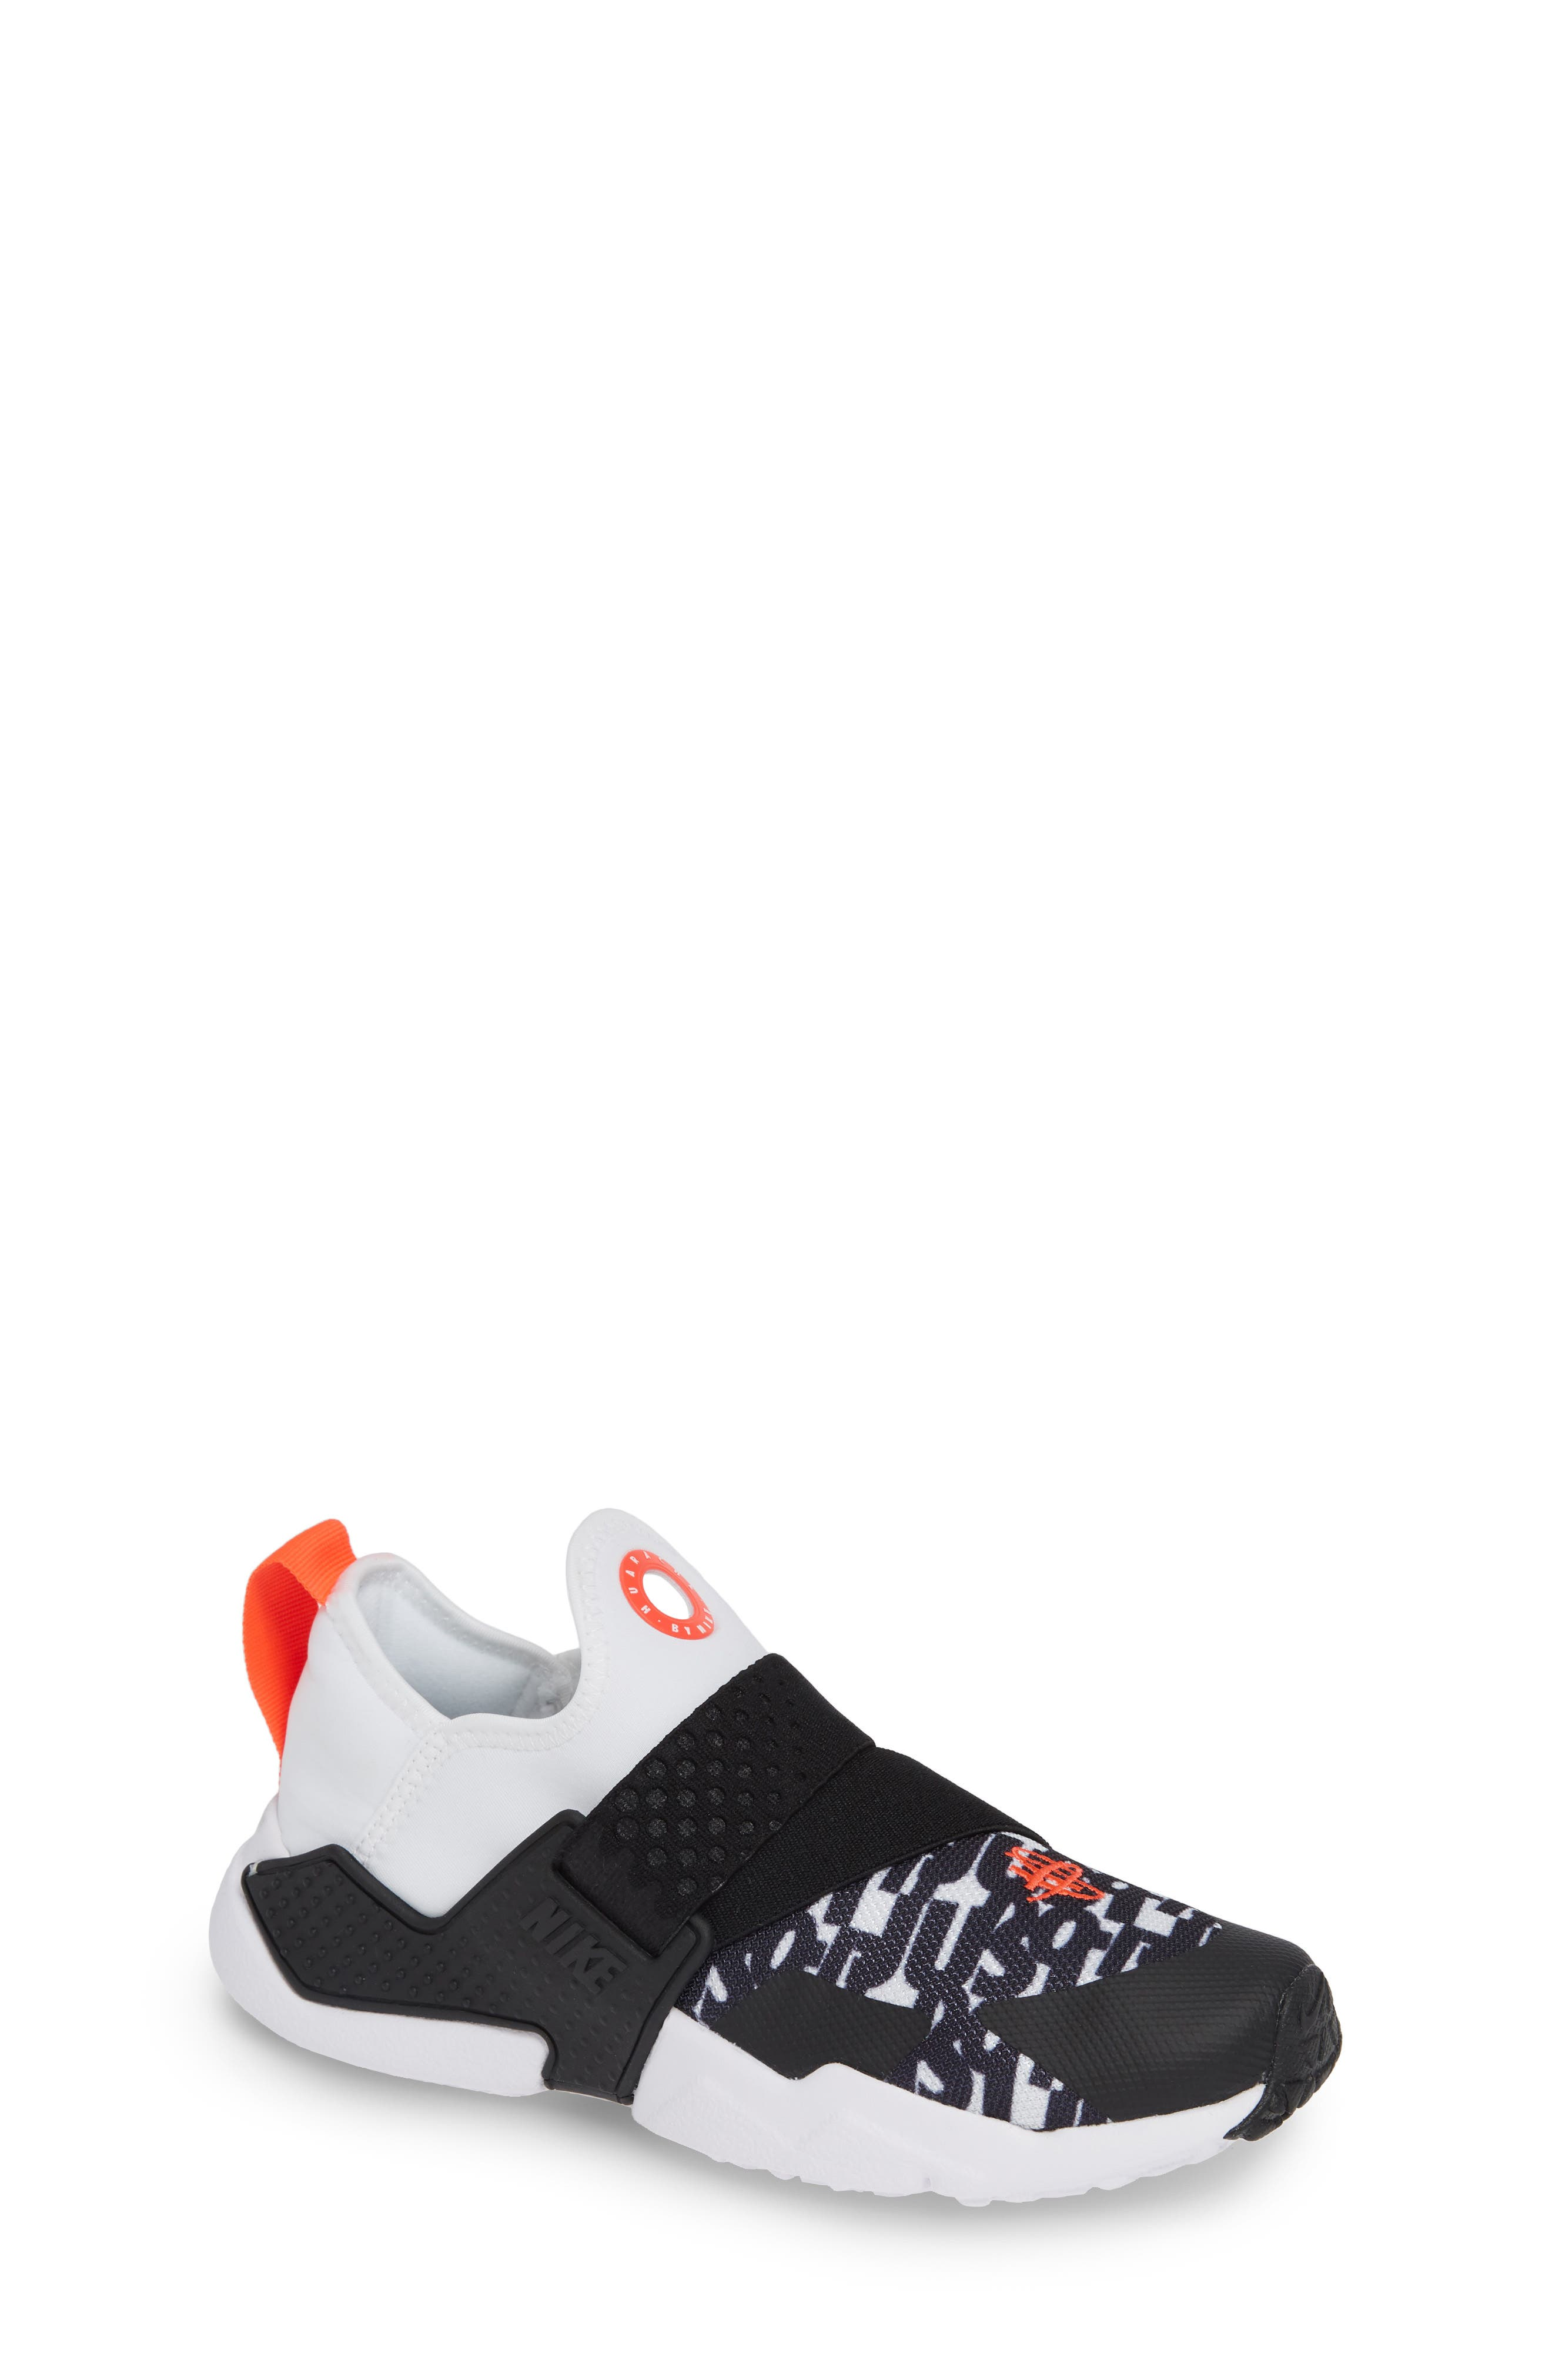 Hurache Extreme Print Sneaker,                         Main,                         color, 100